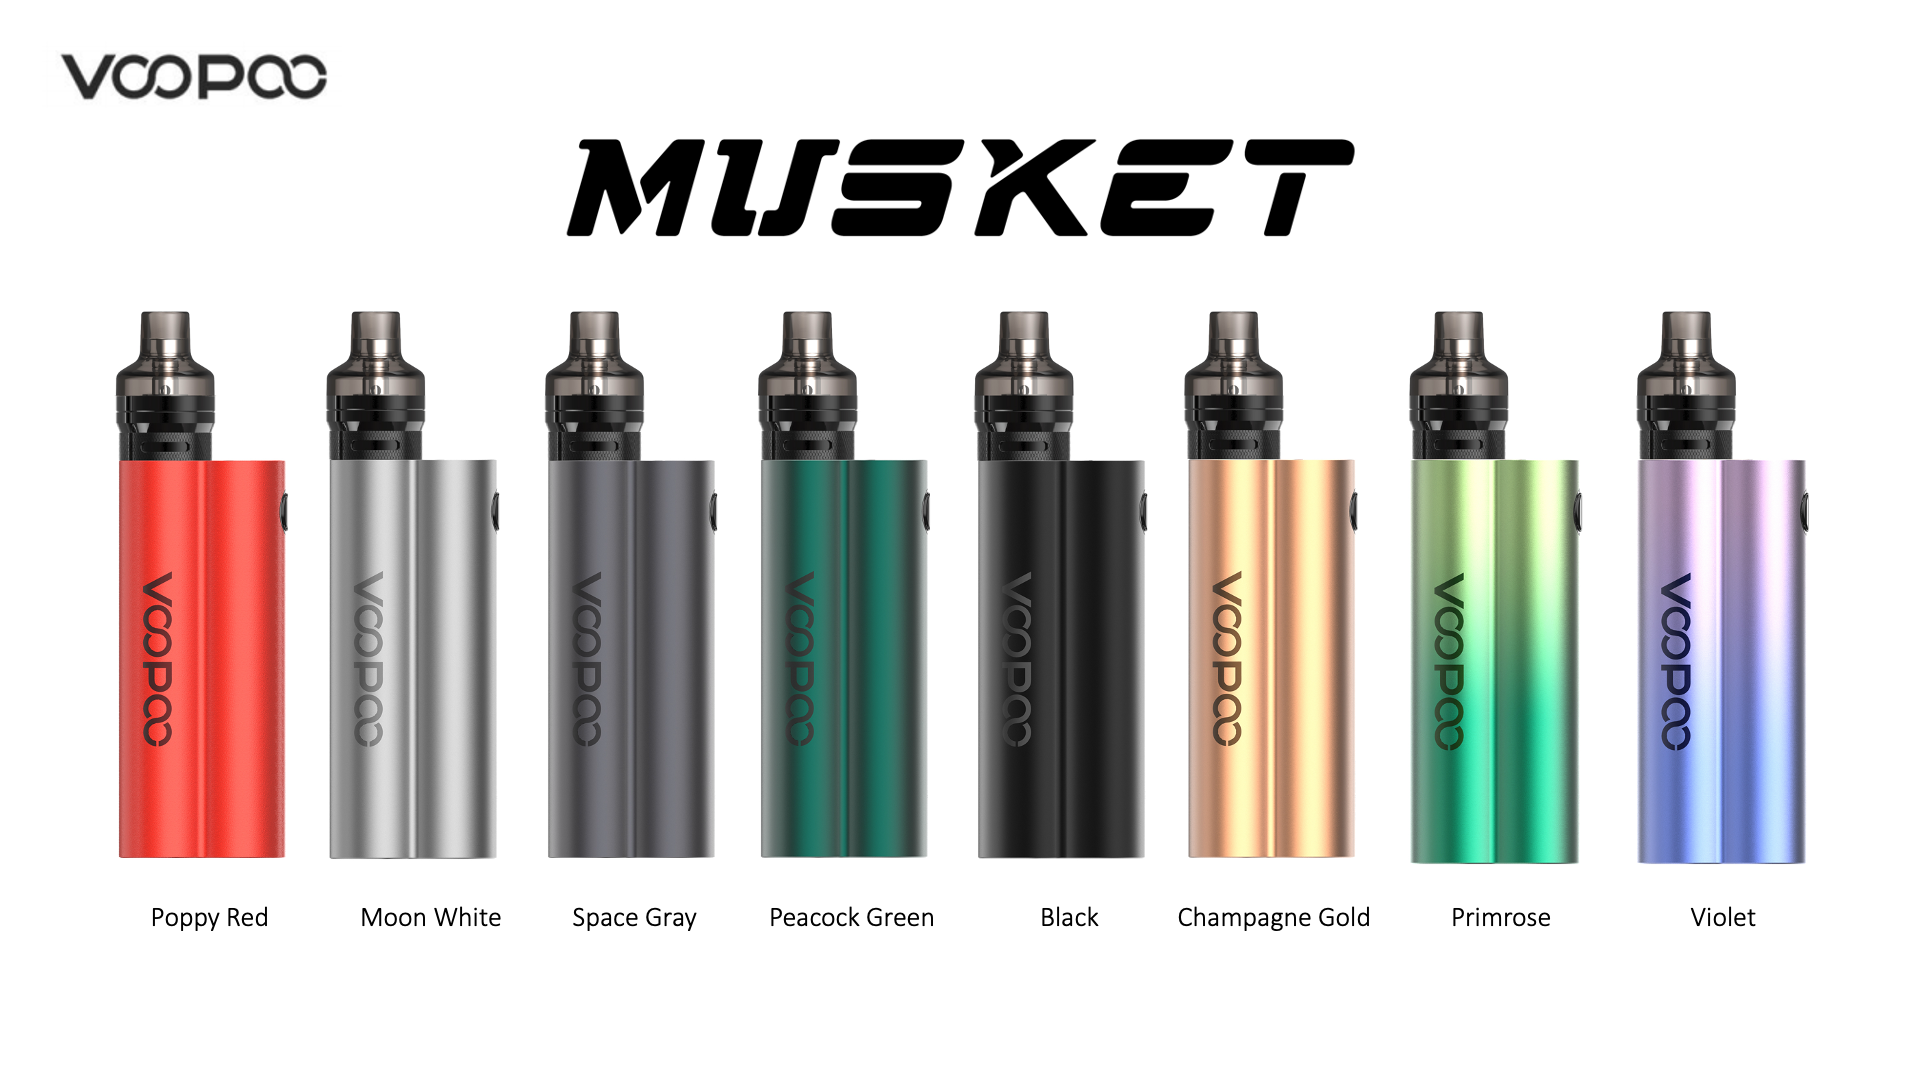 Kit Musket Voopoo 120W + PnP Pod Tank Colores